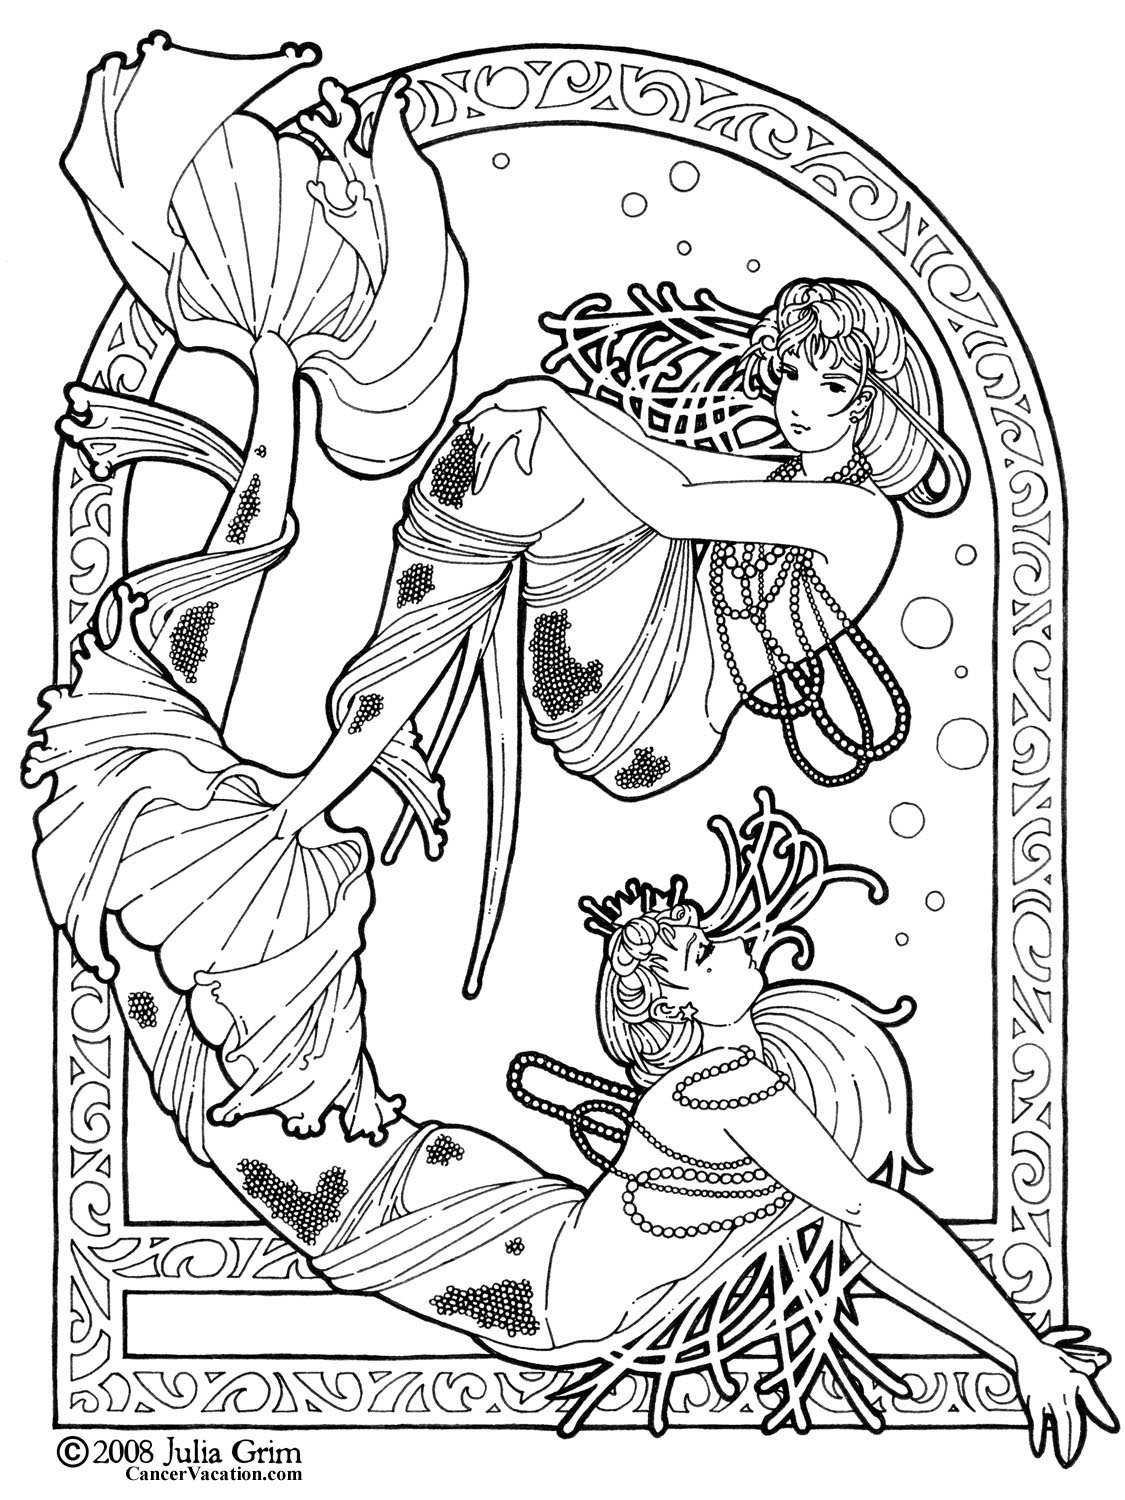 fantasy coloring pages fantasy animal coloring pages at getdrawings free download pages coloring fantasy